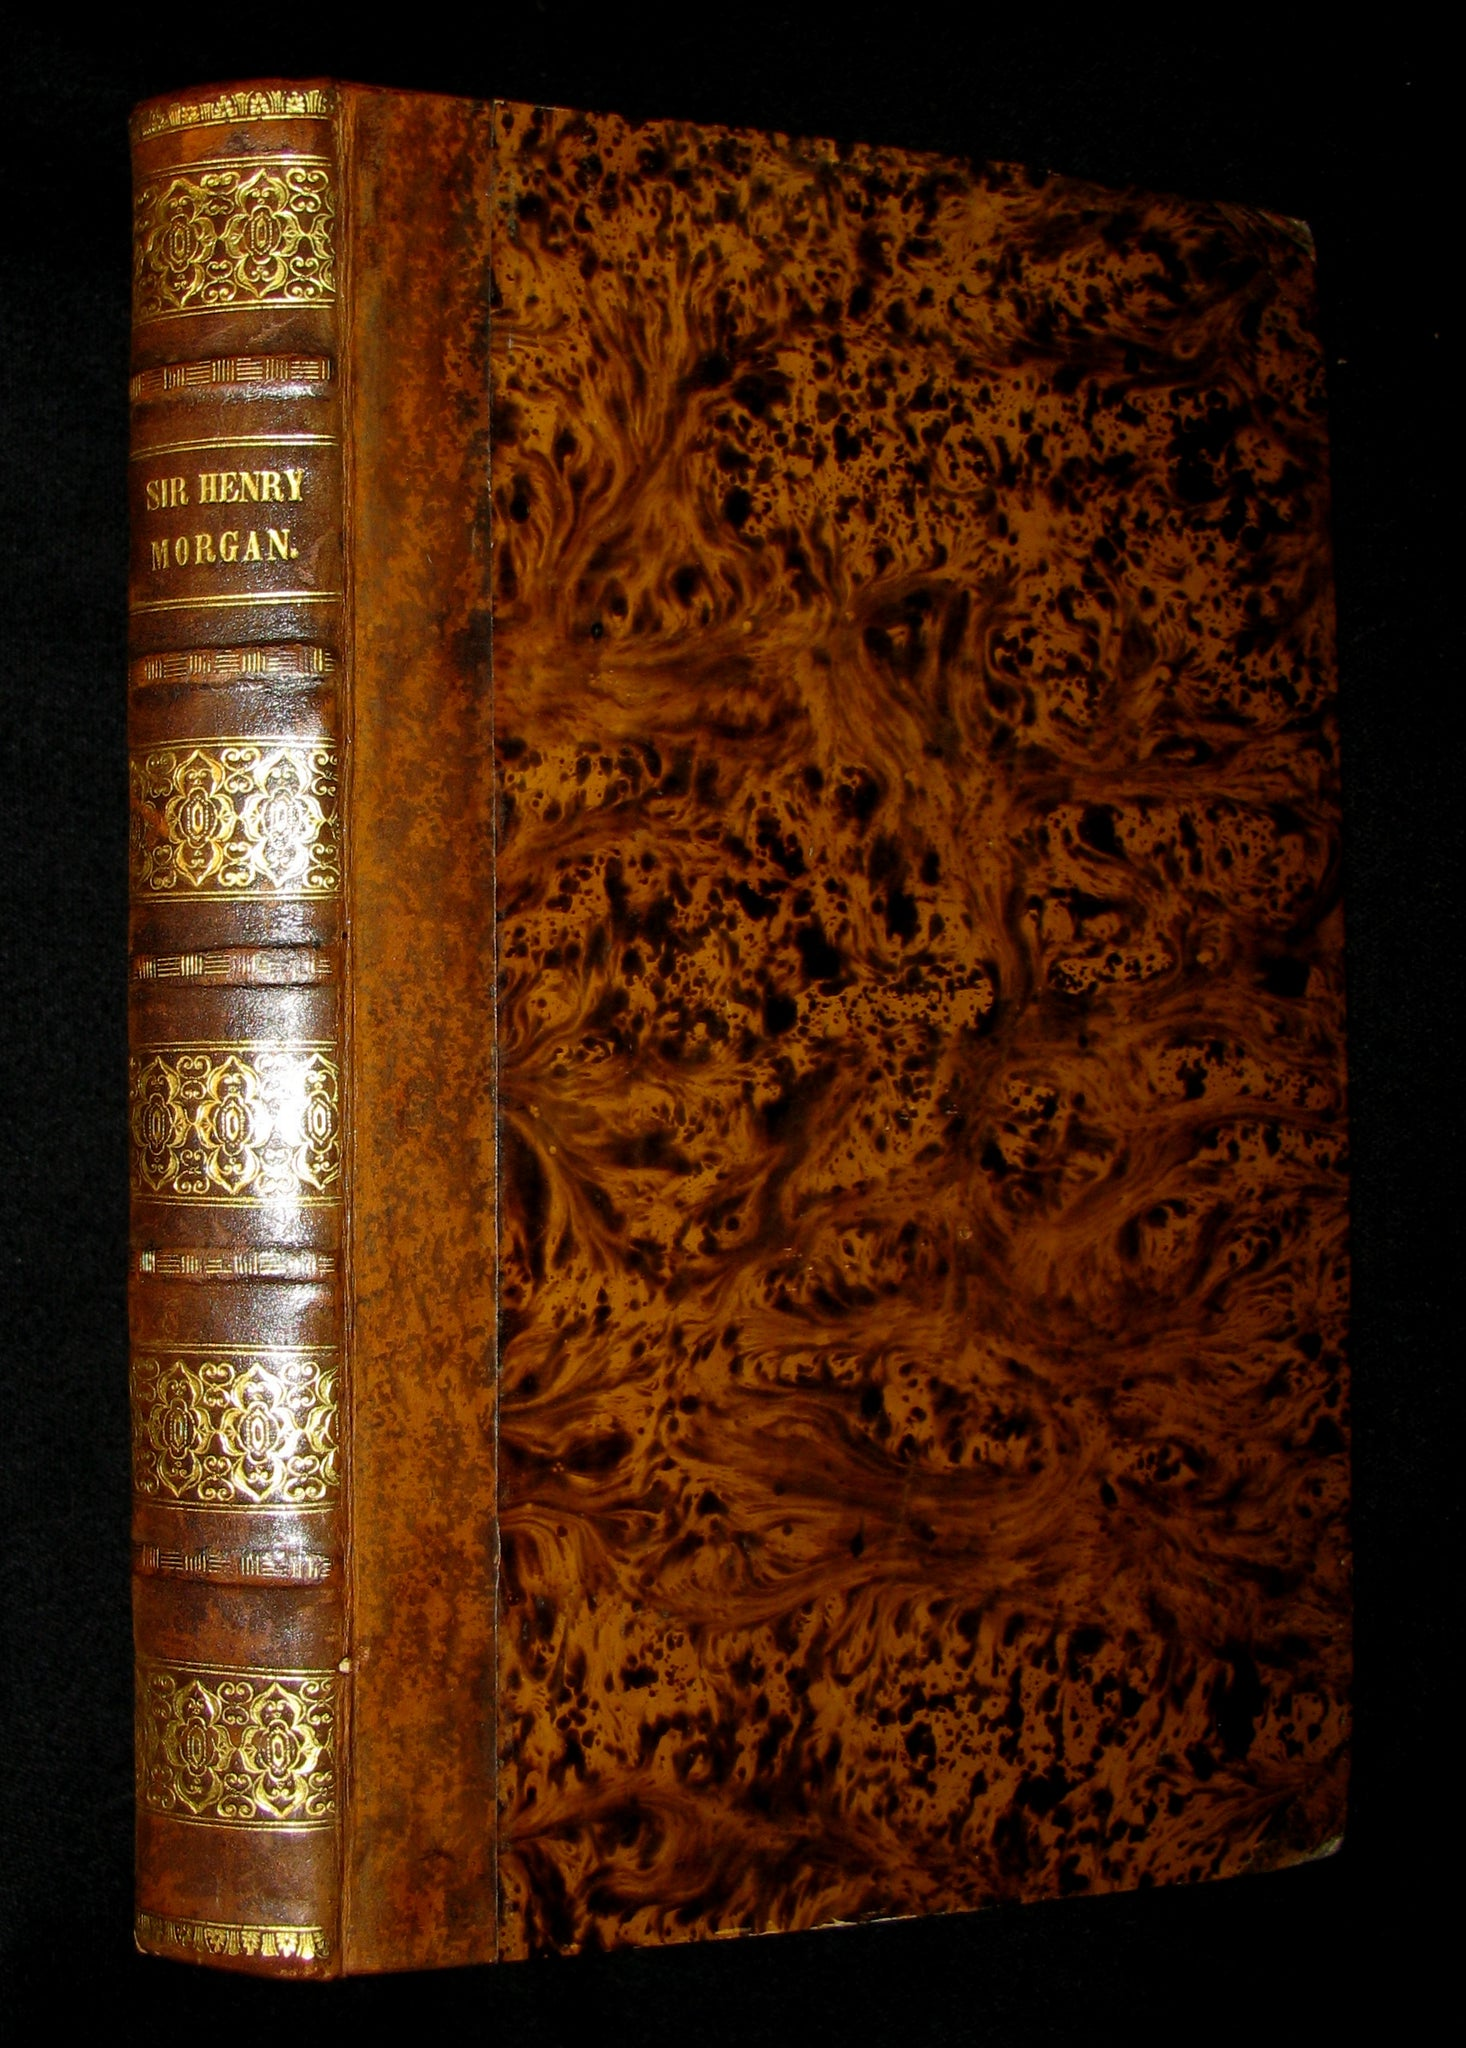 1842 Scarce Book - Sir Henry Morgan, the Buccaneer by Edward Howard. First Edition.